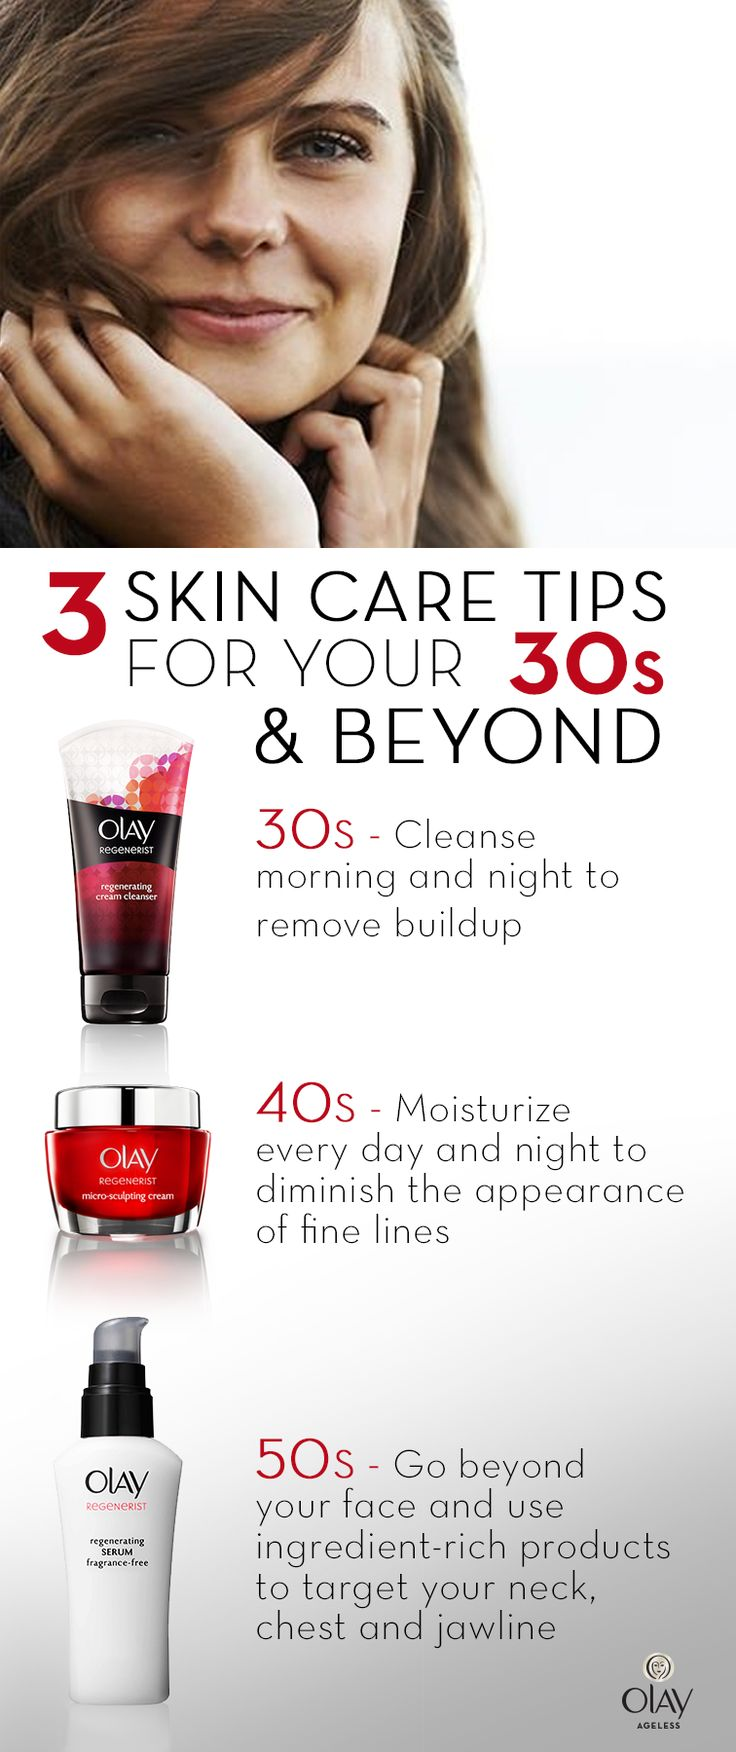 Getting older is inevitable but older looking skin is not. With a commitment to a good skin care regimen, rest easy knowing that your healthy looking complexion can last well into your 30s, 40s and 50s. For skin care tips at any age, use Olay Regenerist Micro-Sculpting Cream to renew from within, plumping surface cells without the need for fillers. No matter your age, ensure you place emphasis on cleansing, moisturizing with SPF and targeting your jawline, neck and chest.